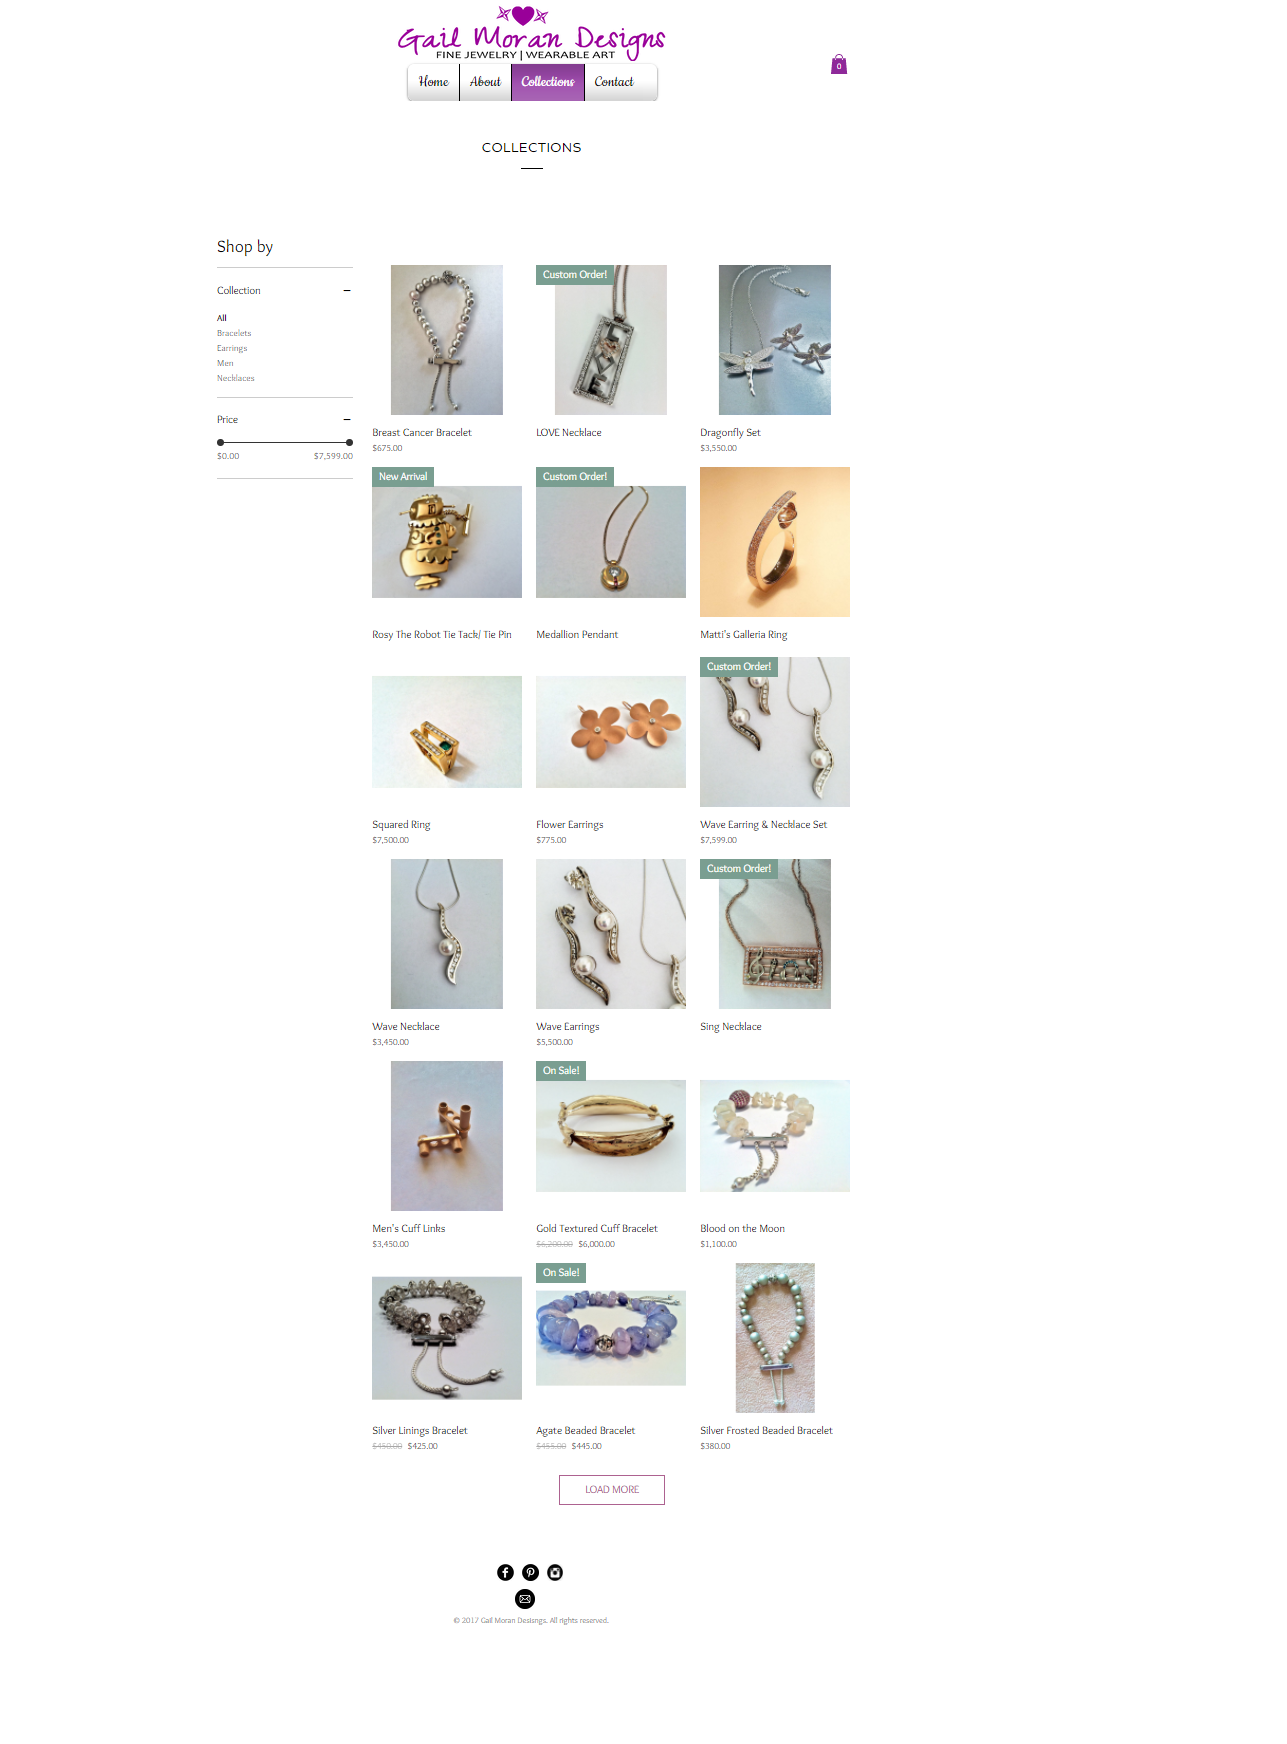 Gail Moran Designs Website- Collections